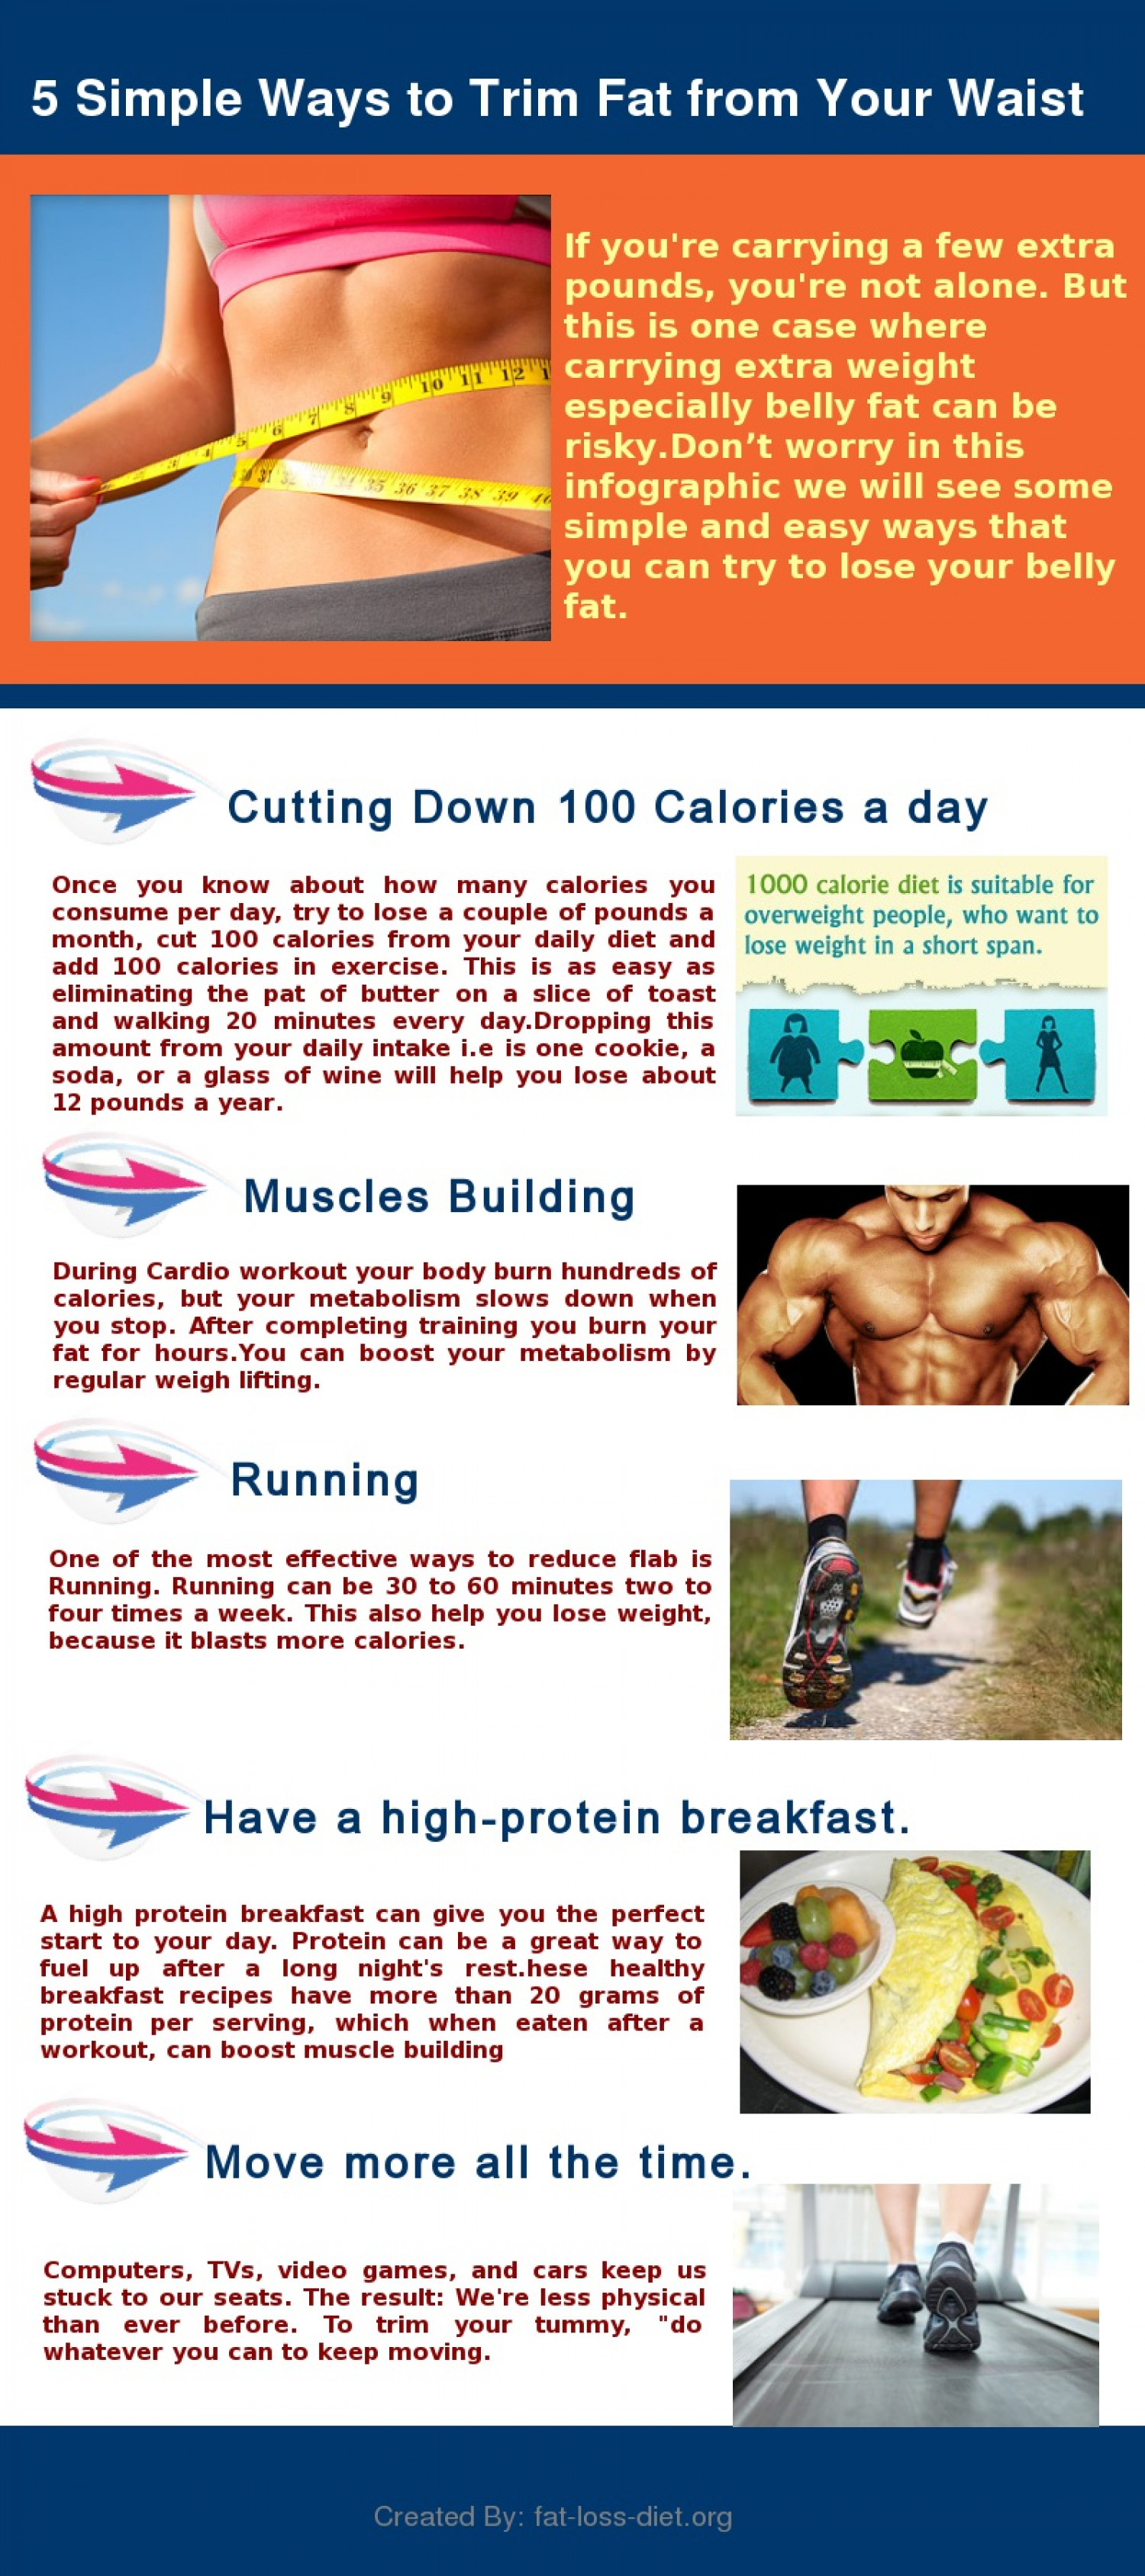 5 Simple Ways to Trim Fat from your Waist Infographic